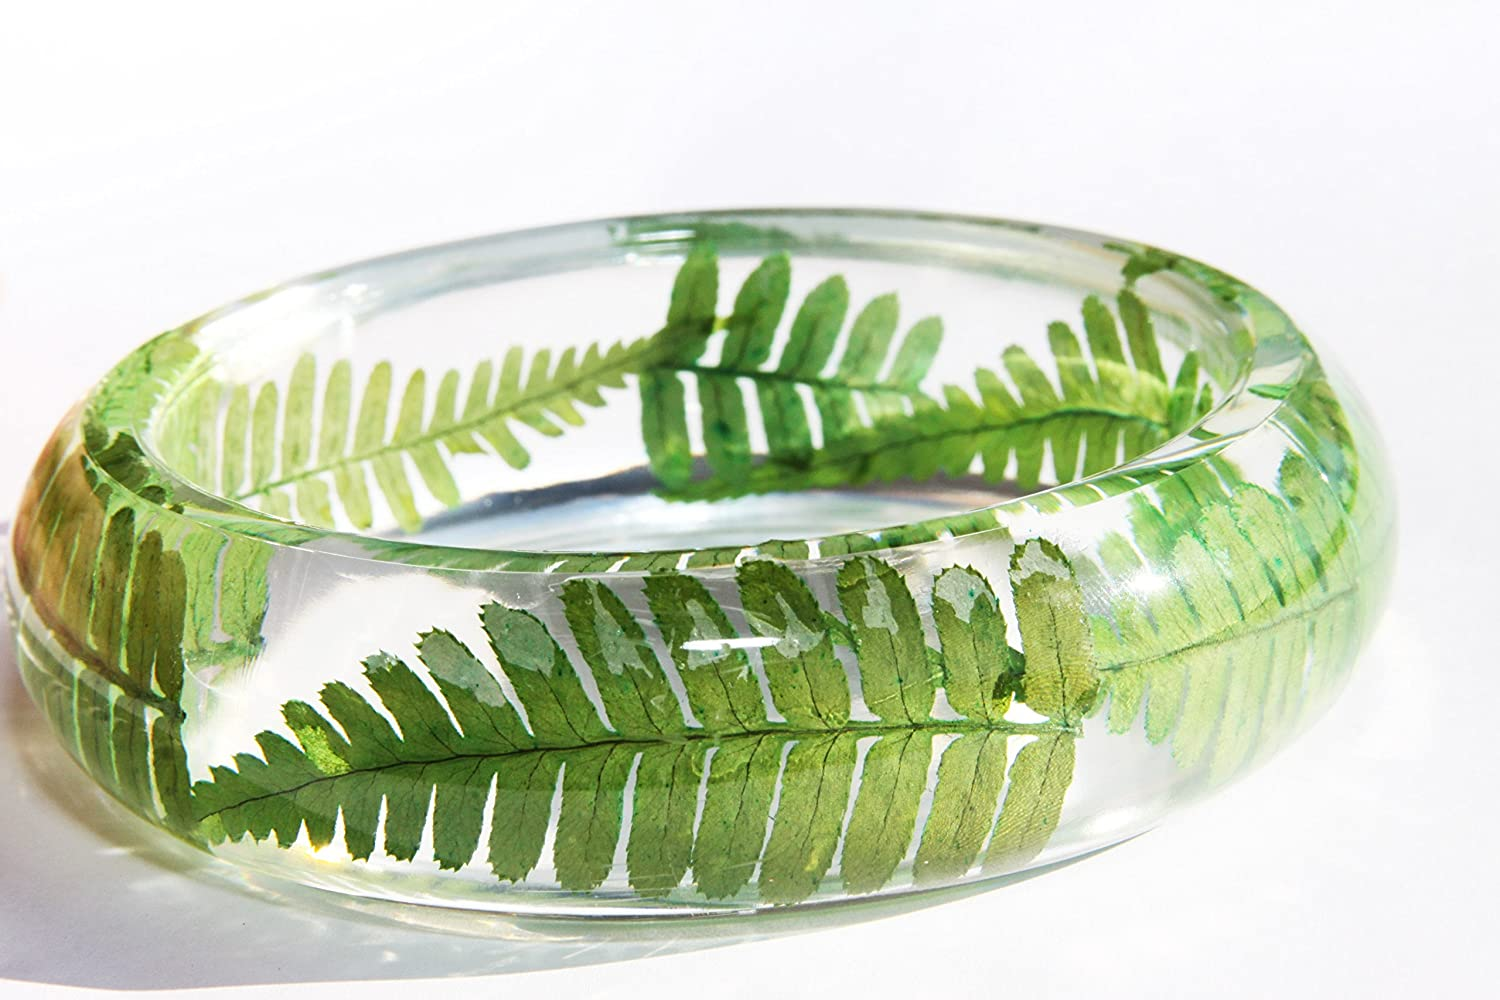 50s Jewelry: Earrings, Necklace, Brooch, Bracelet Handmade Real dried leaf Botanical Garden Resin Bangle Bracelet.{G-12}Size 68mmheight 23mm. Free USA shipping. $23.55 AT vintagedancer.com